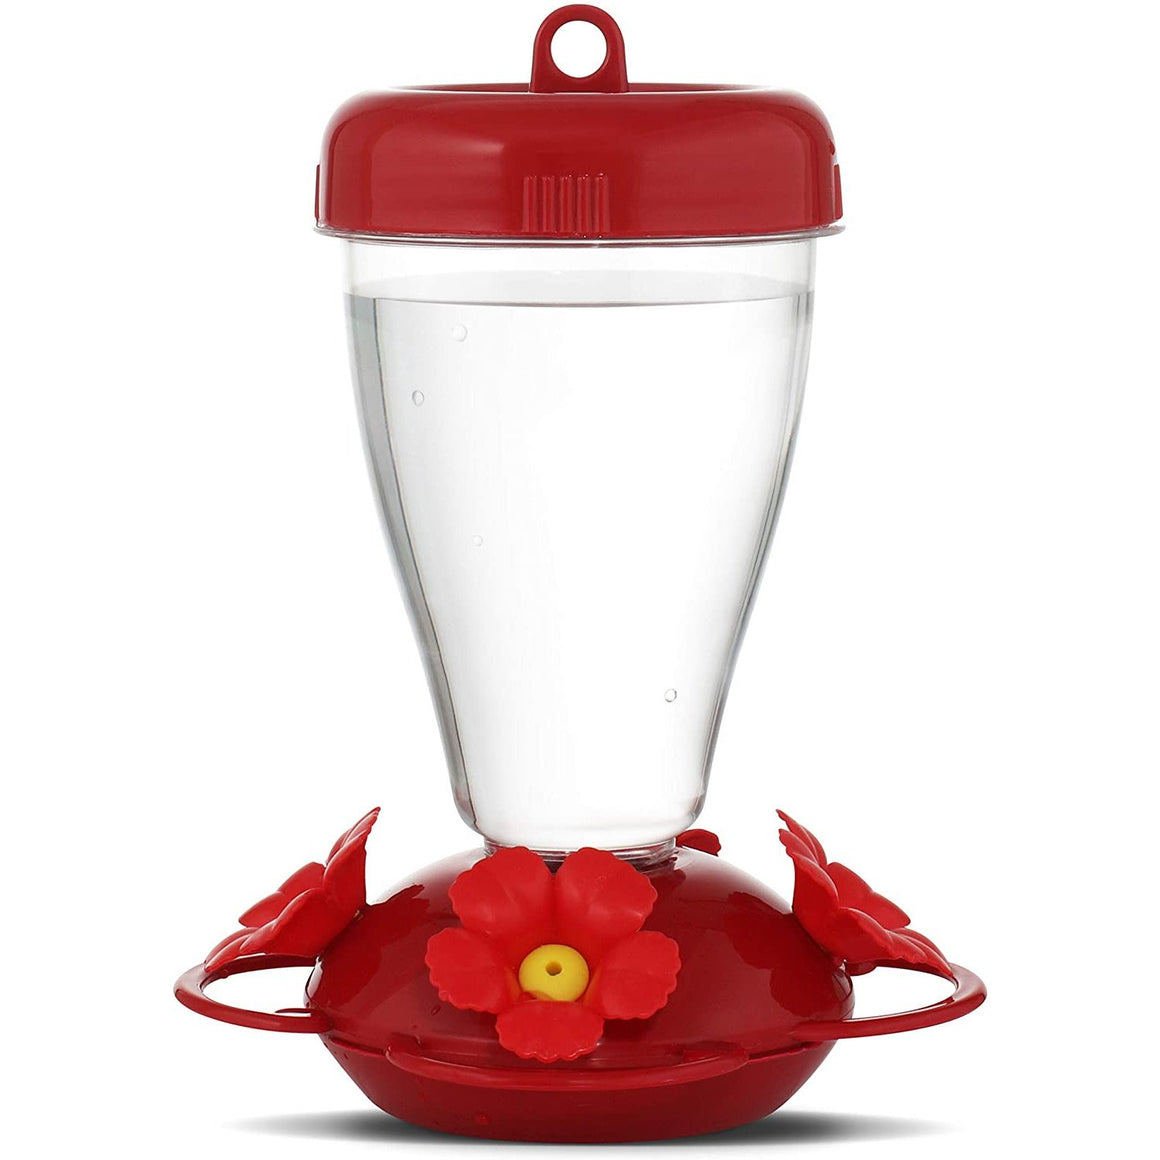 Perky-Pet Red Hibiscus Top Fill Plastic Hummingbird Feeder 16 oz